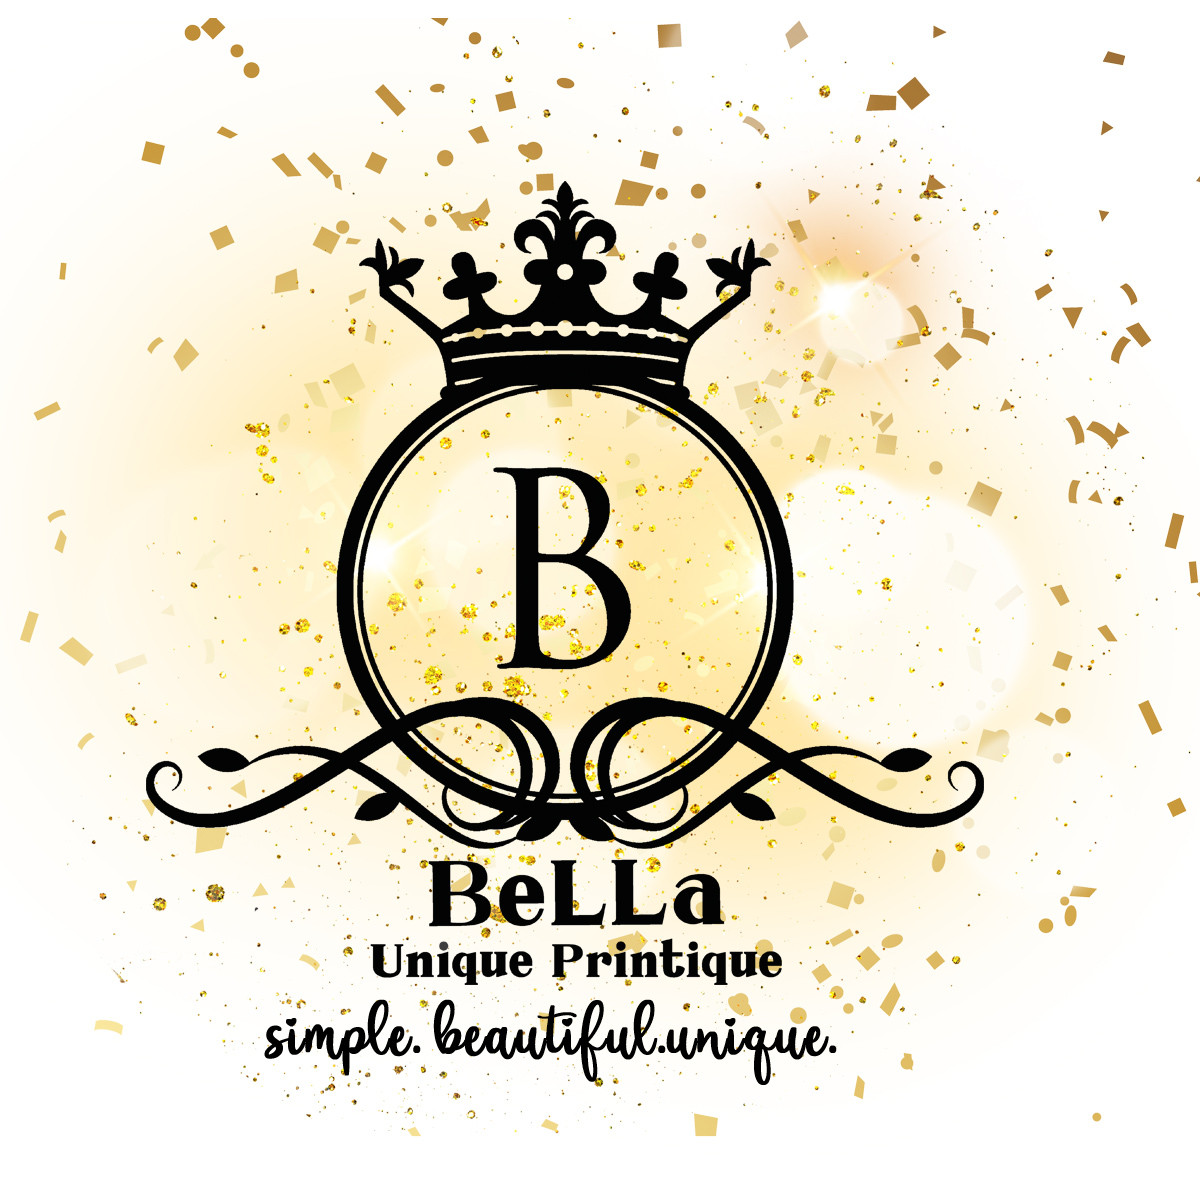 BellaUniquePrintique's profile picture